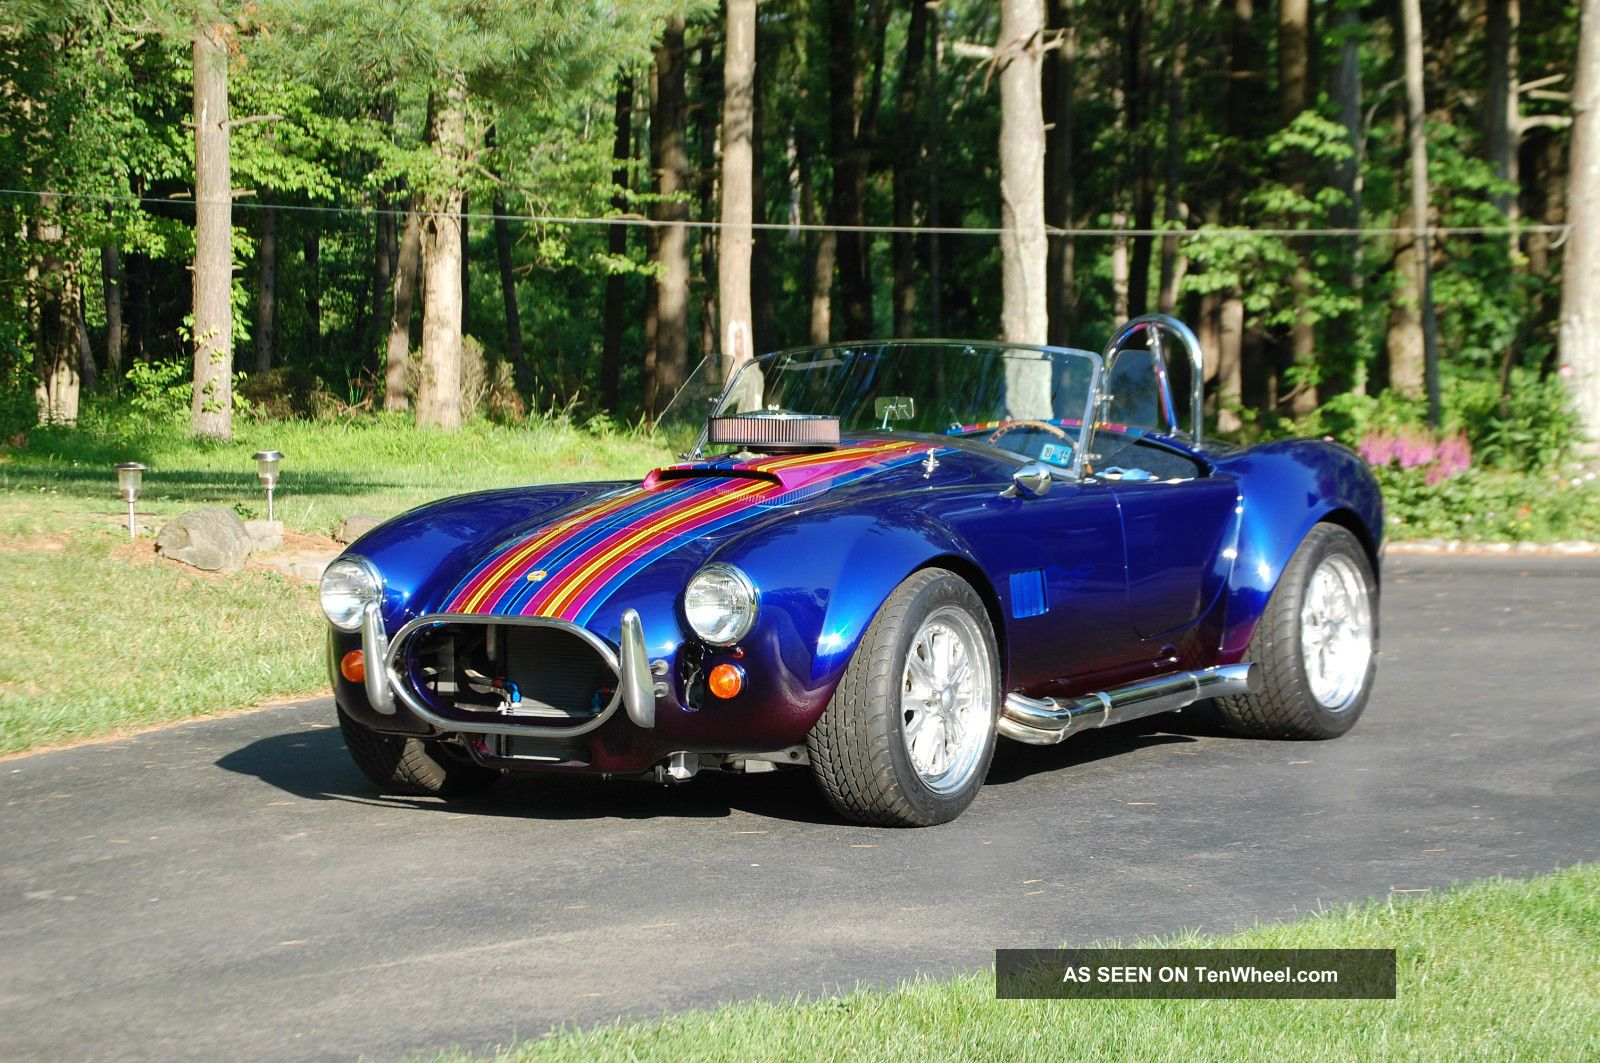 1990 Everett Morrison Shelby Cobra High Performance 510 Cubic Inch Doug Nash Replica/Kit Makes photo